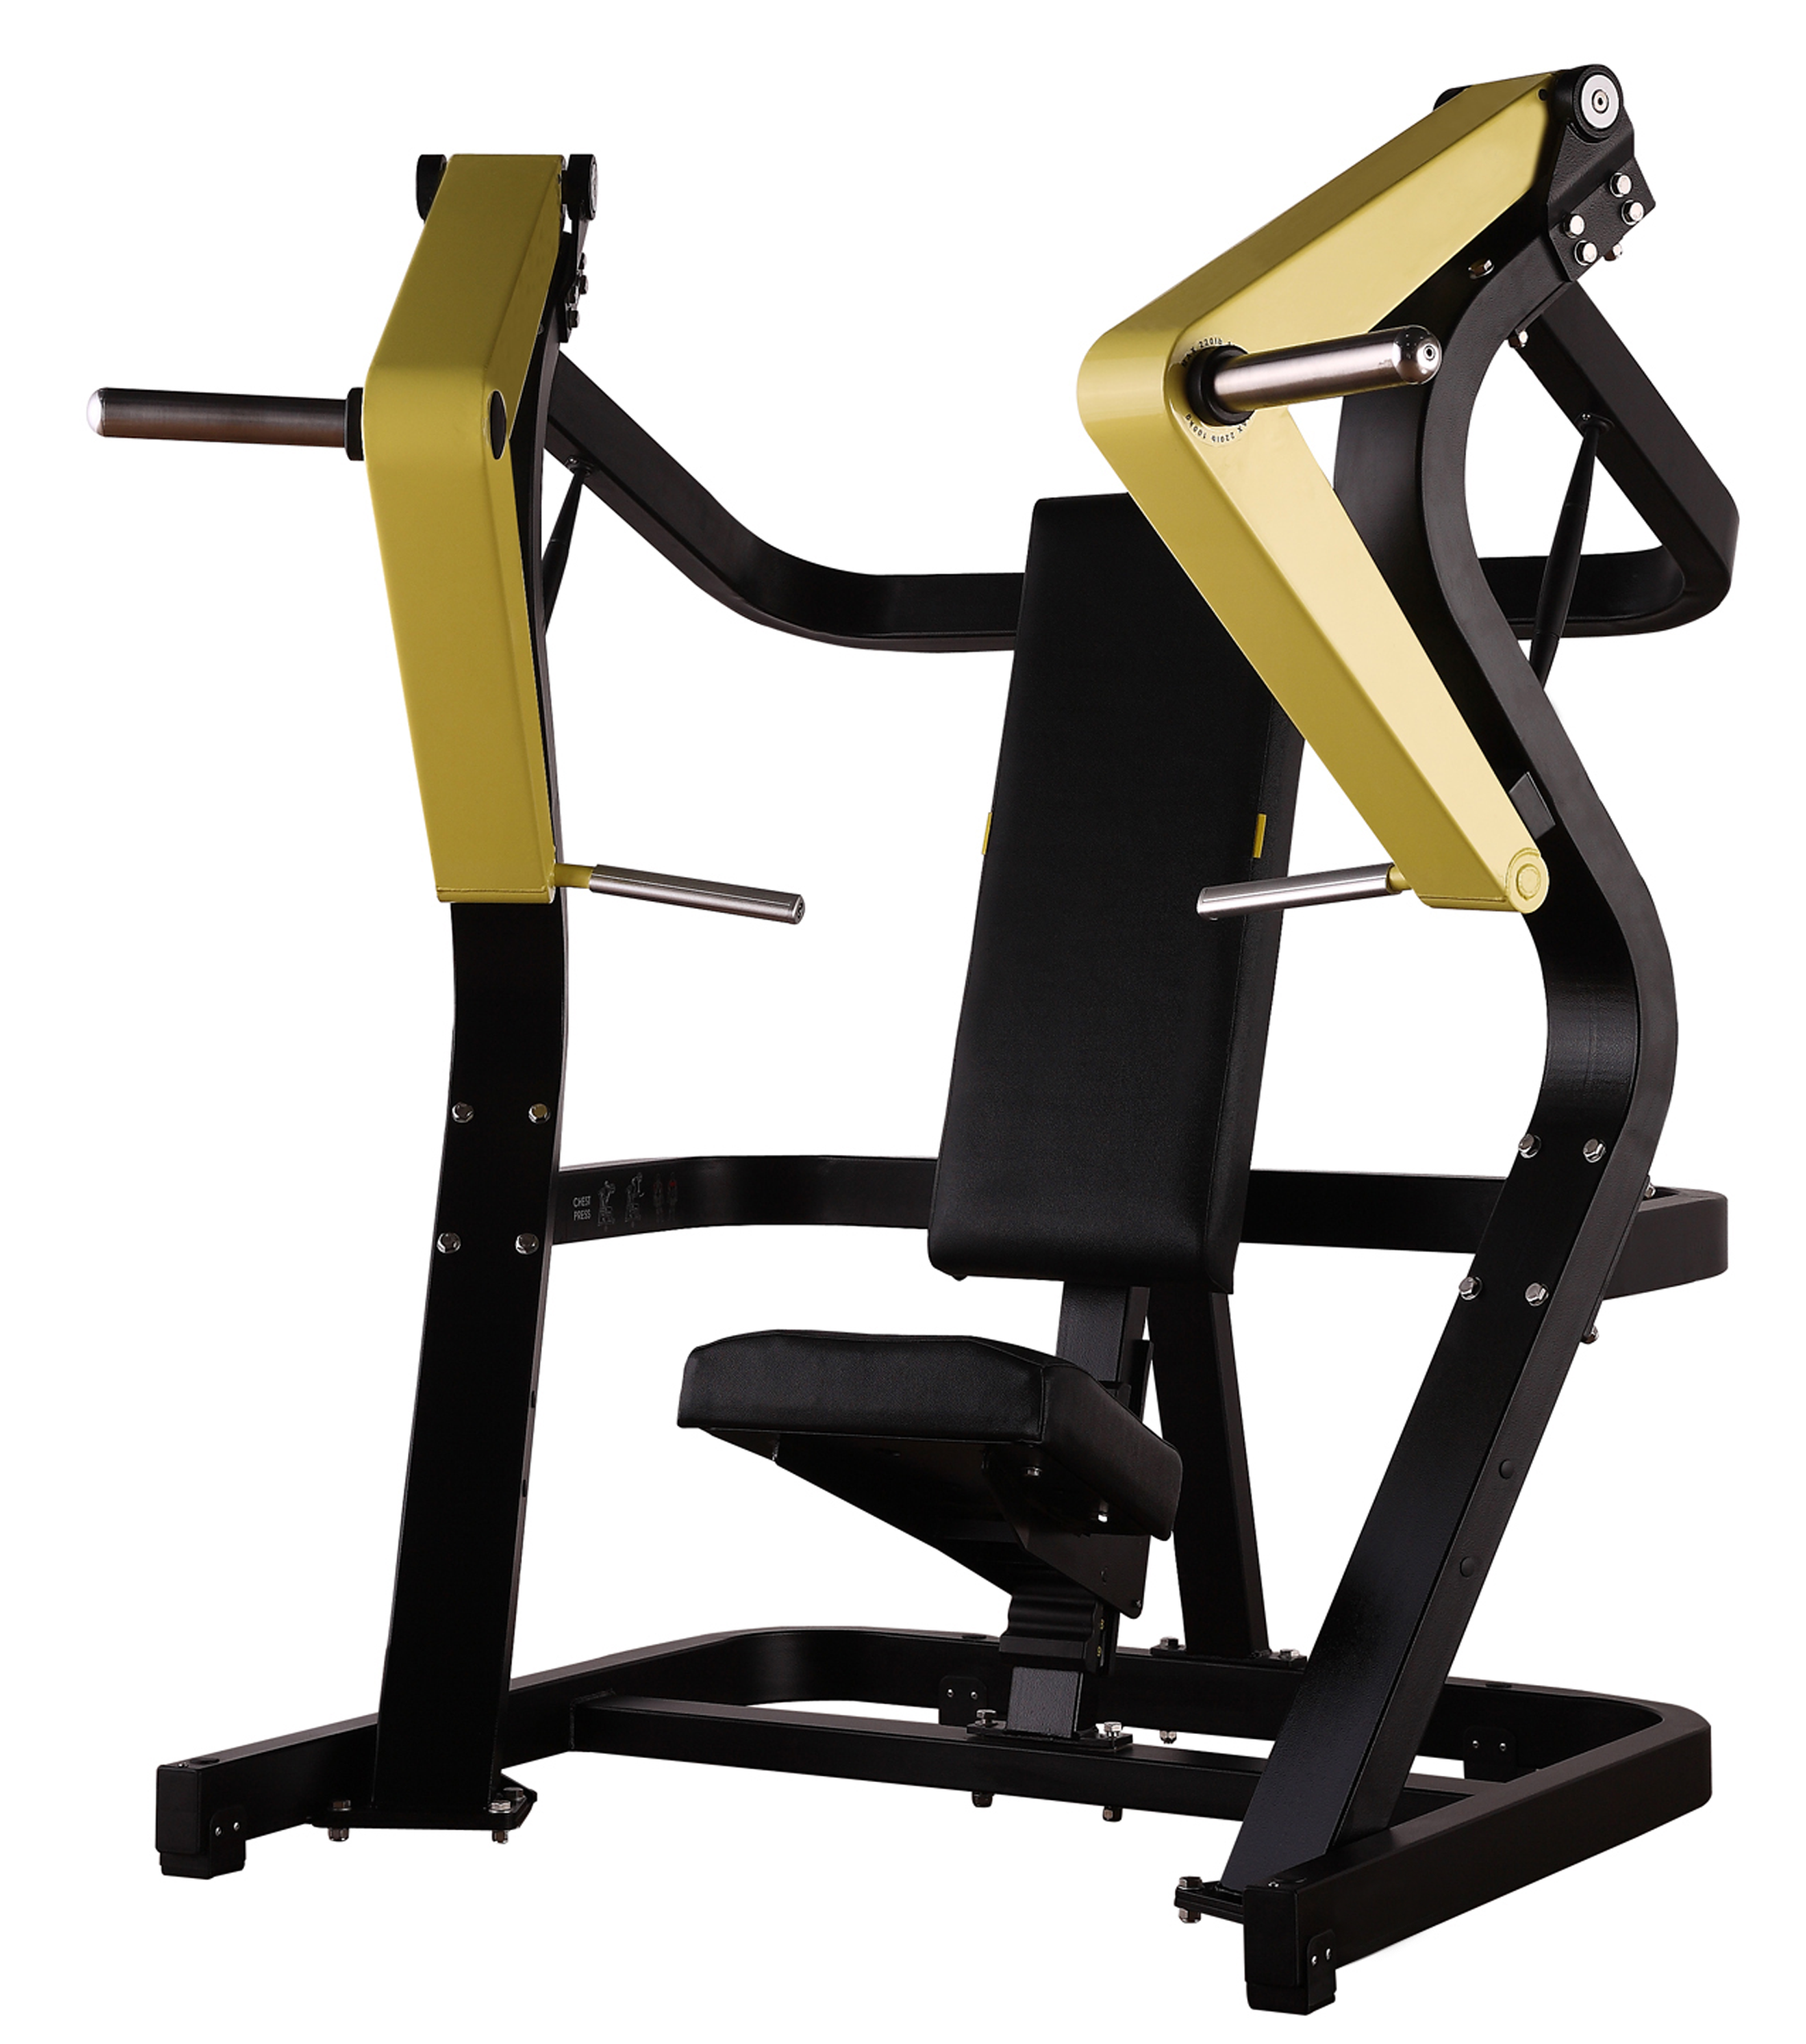 CHEST PRESS LEVERAGE OLYMPUS® by Renouf Fitness